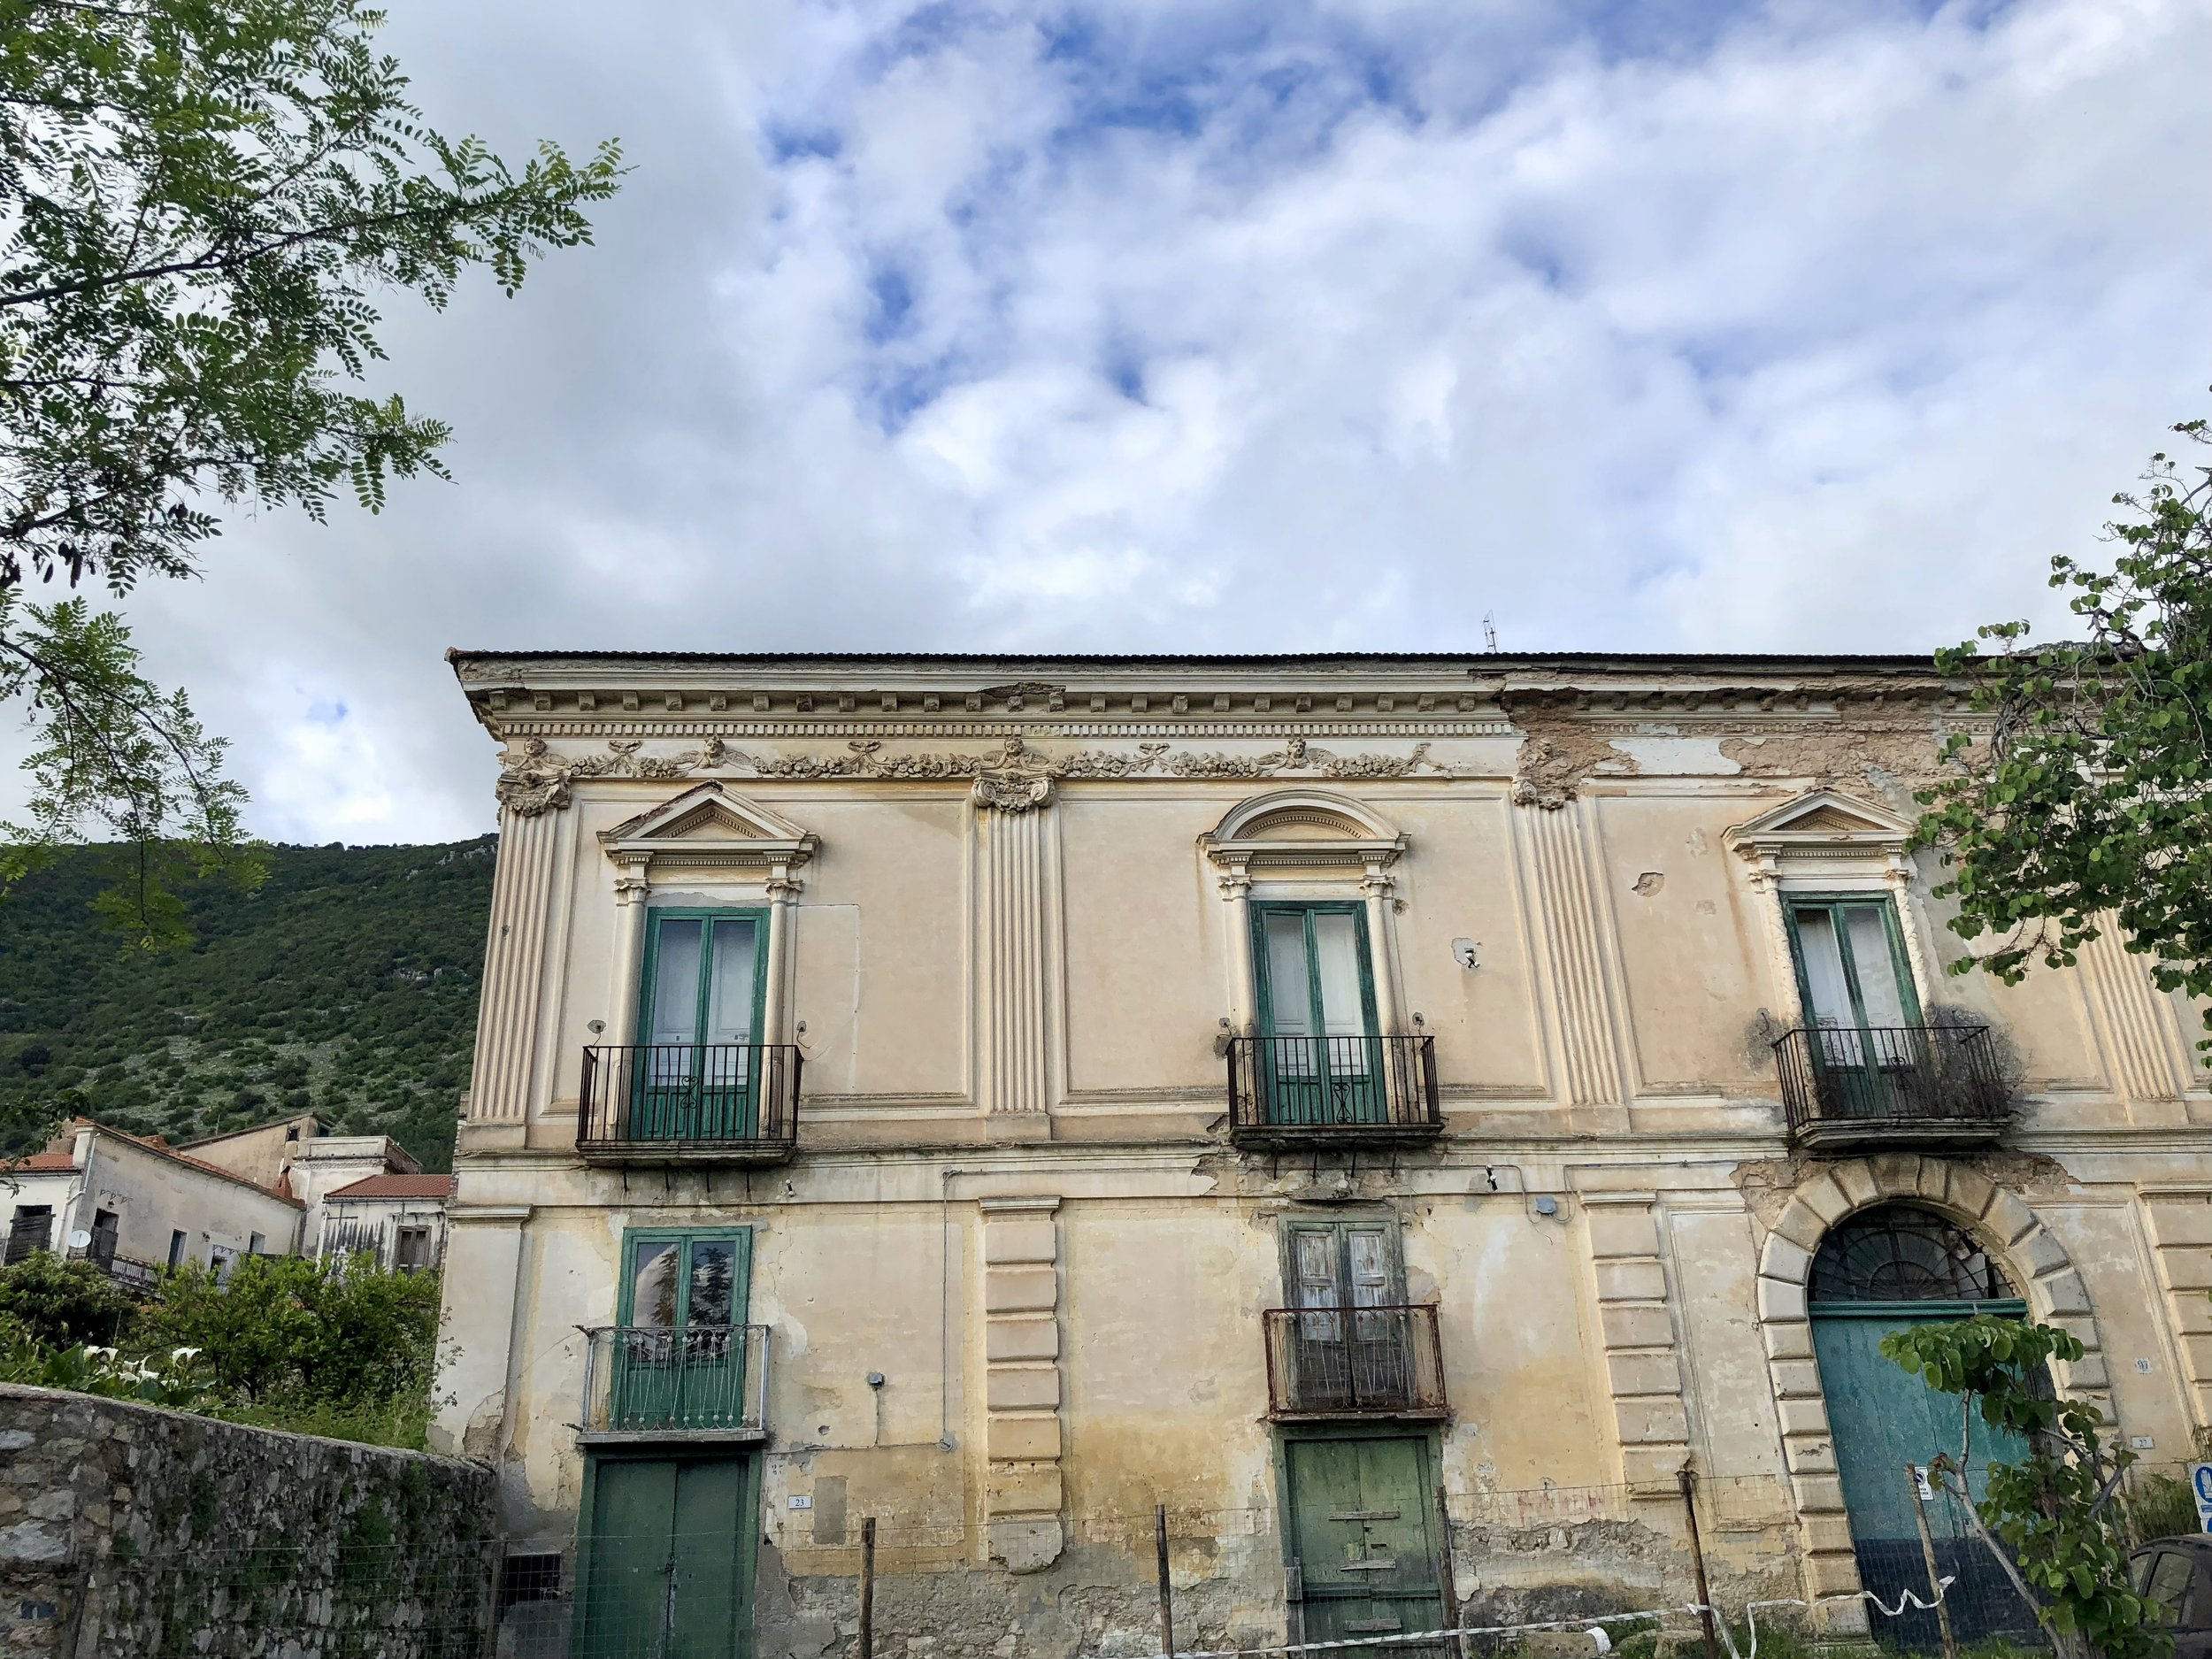 Abandoned palace in Capaccio